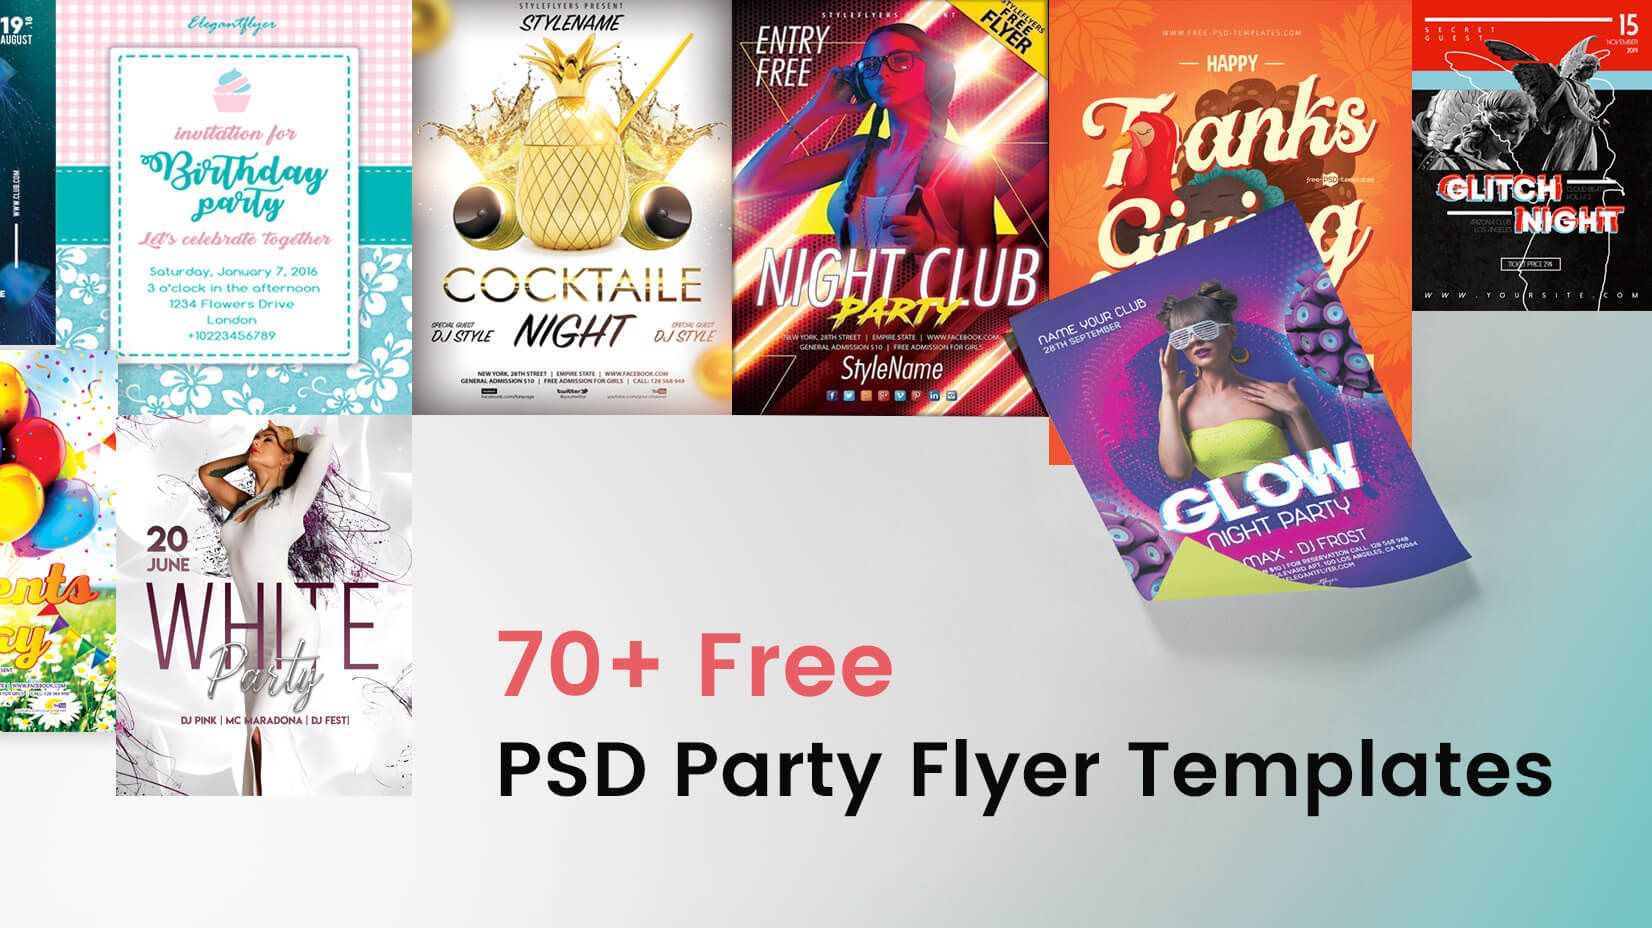 008 Dreaded Free Birthday Flyer Template Psd Picture  Foam Party - Neon Glow Download PoolFull